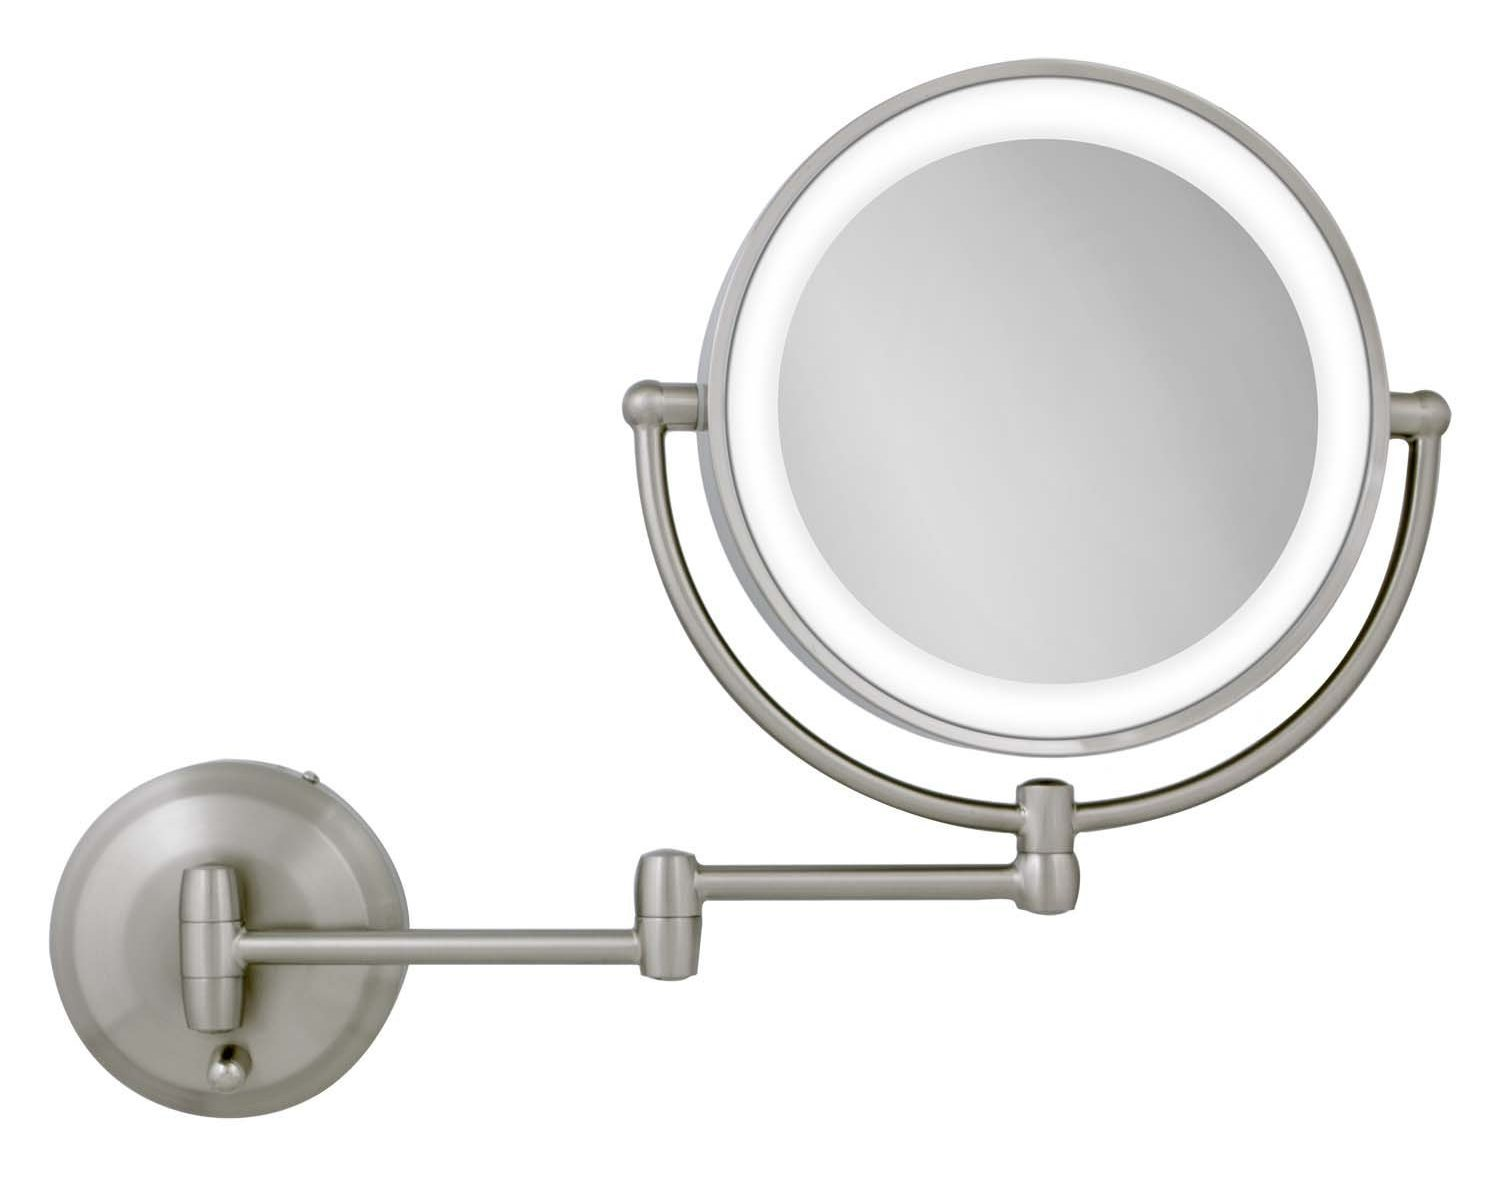 Best Lighted Vanity Mirror-Zadro 10x Next Generation LED Vanity Mirror